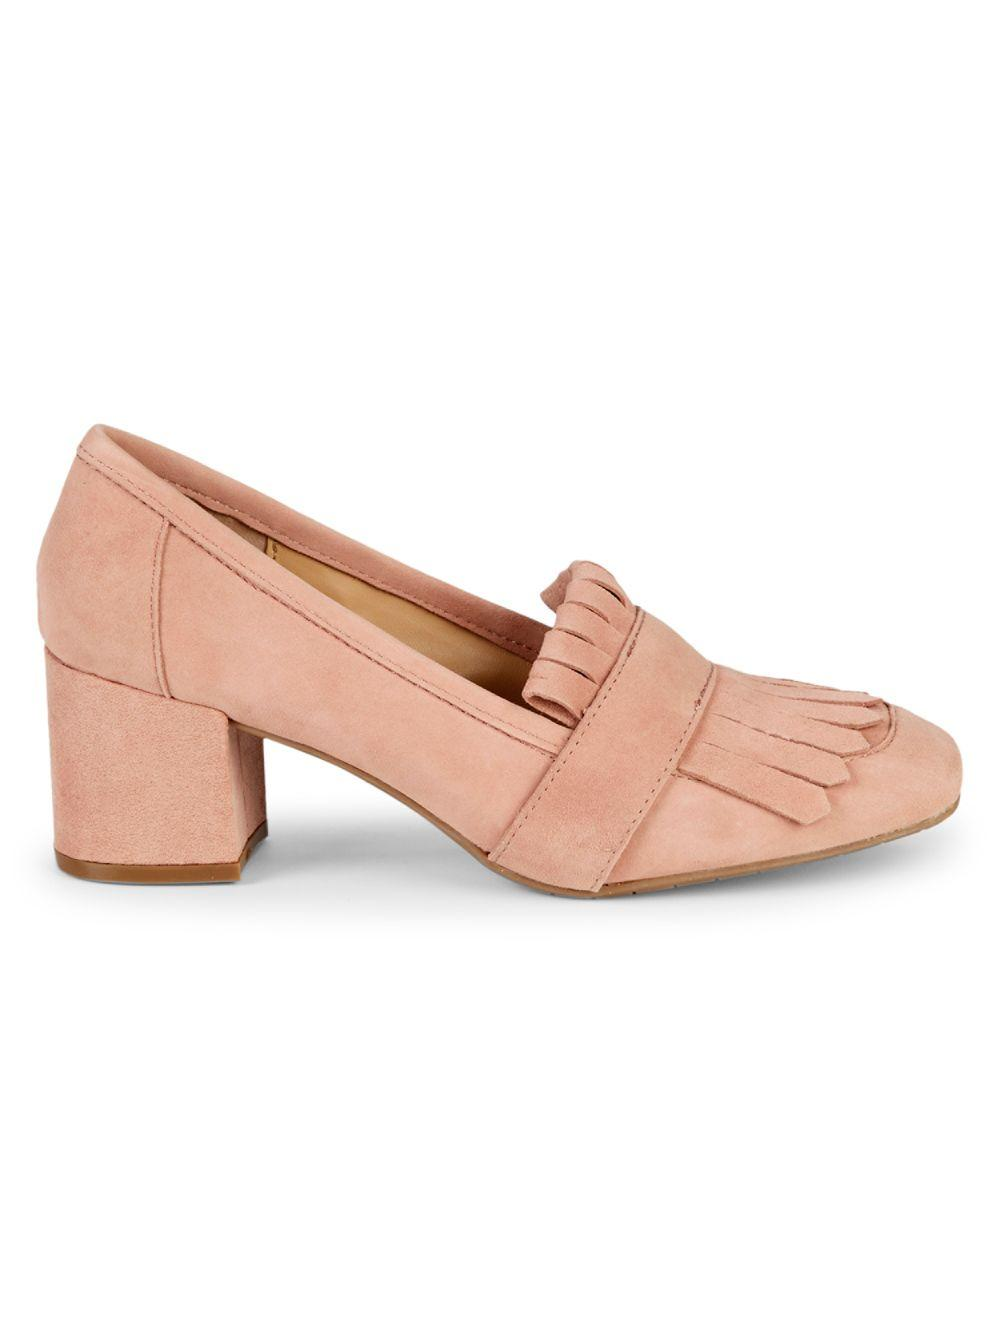 f7fe35ffd06 Lyst - Kenneth Cole Reaction Suede Leather Kiltie-top Loafers in Pink